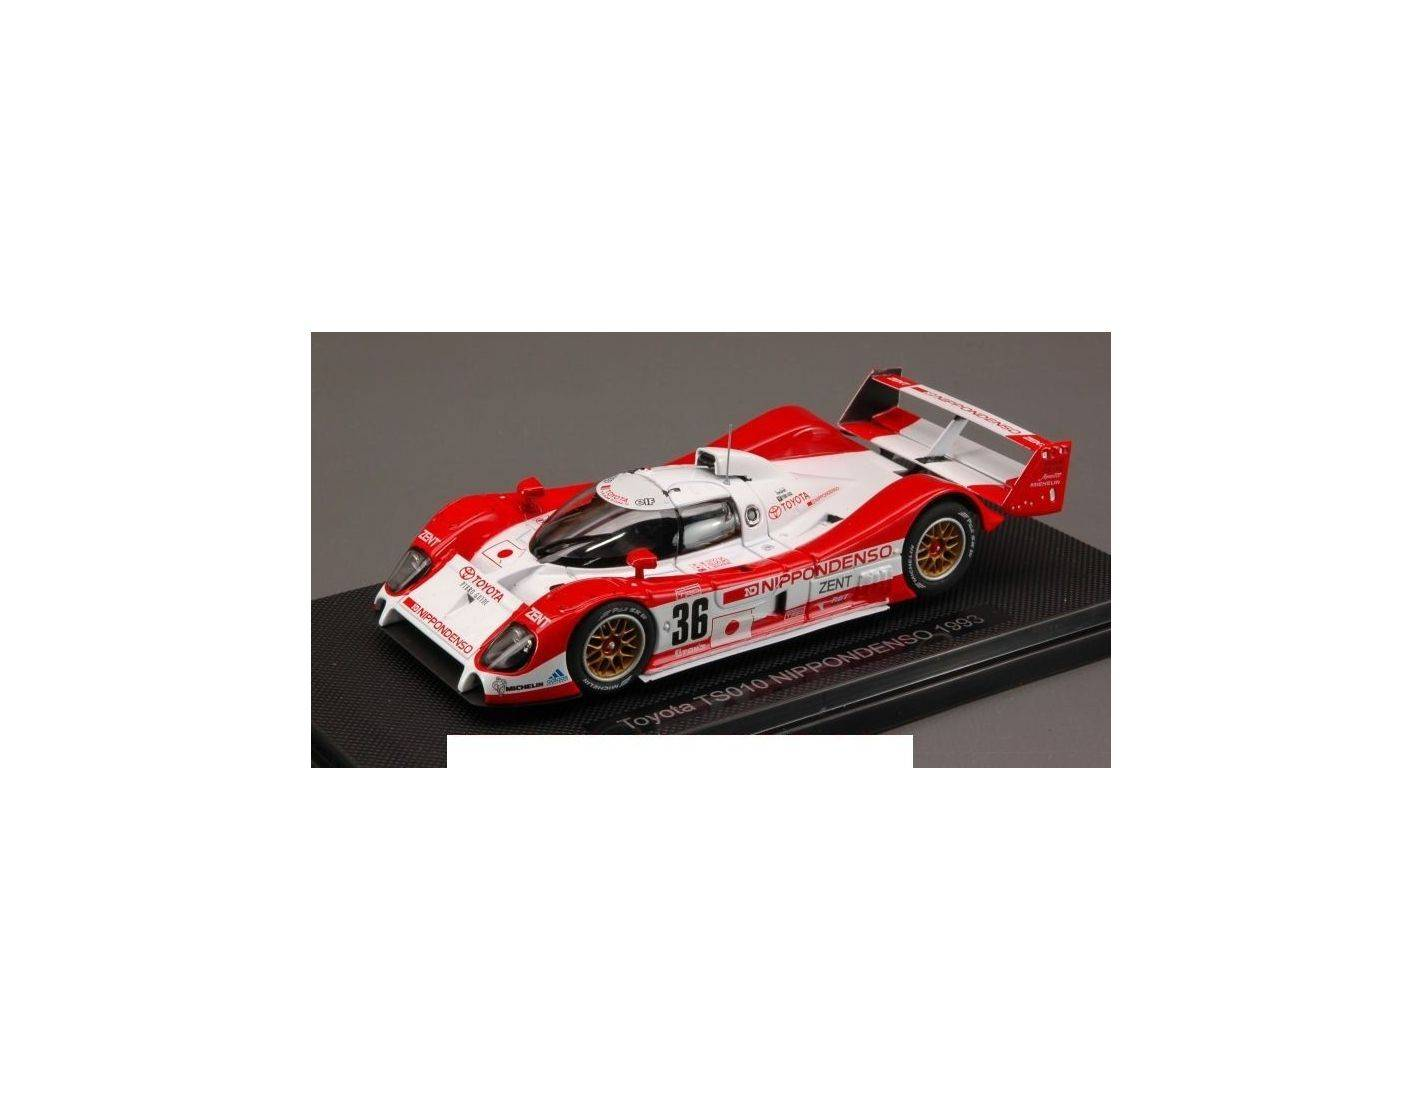 ebbro eb44584 toyota ts010 le mans 1993 sekiya suzuki irvine 1 43 modellino die cast models. Black Bedroom Furniture Sets. Home Design Ideas